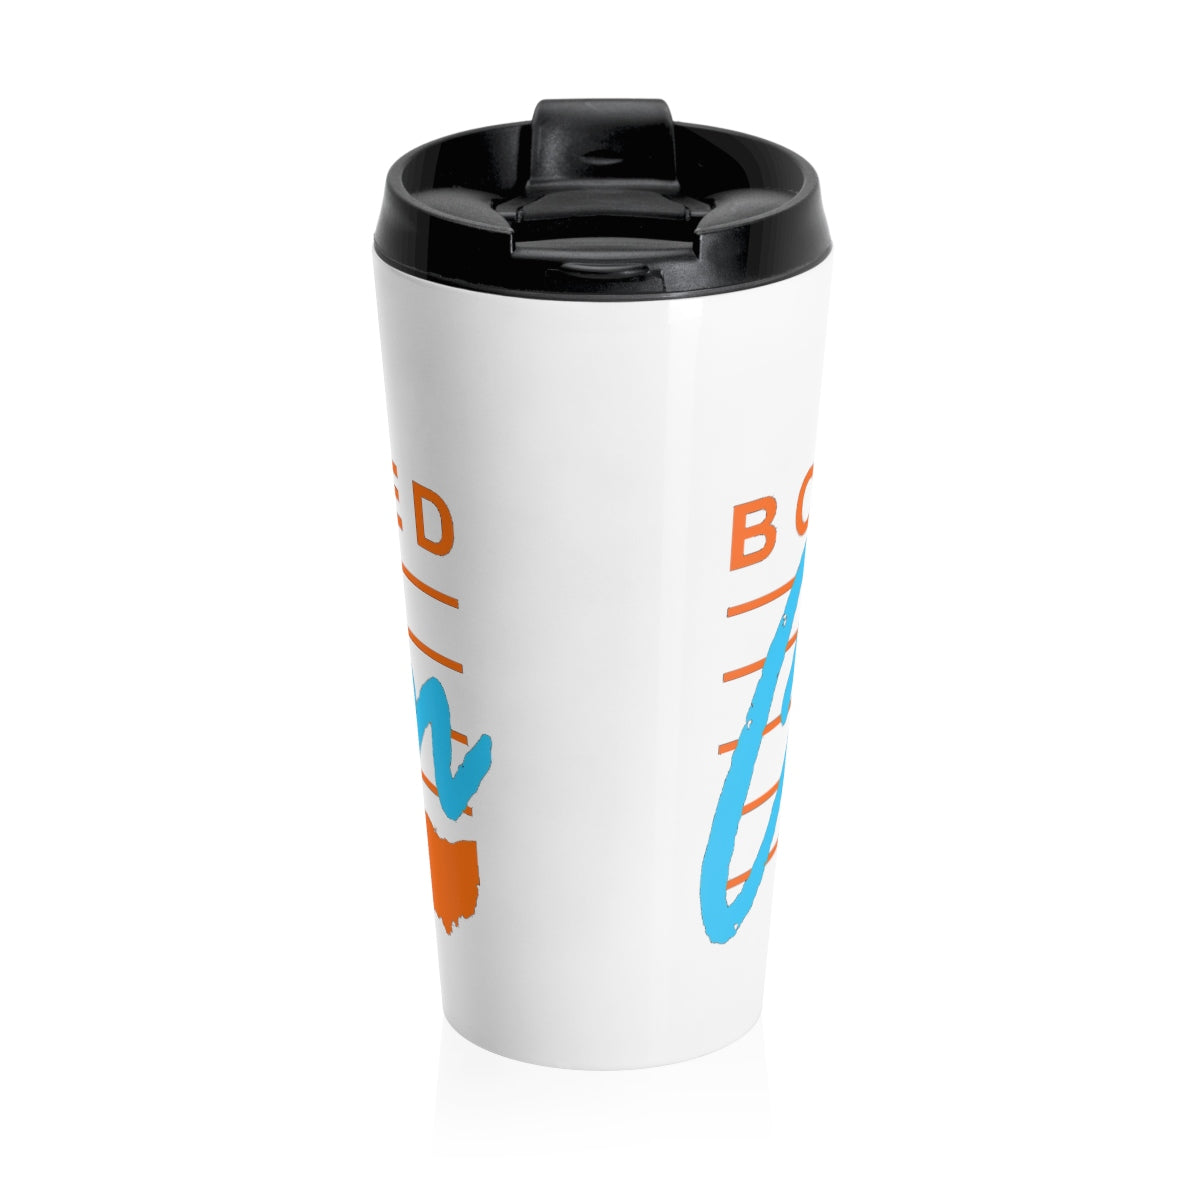 BORN AND RAISED IN CANTON Stainless Steel Travel Mug